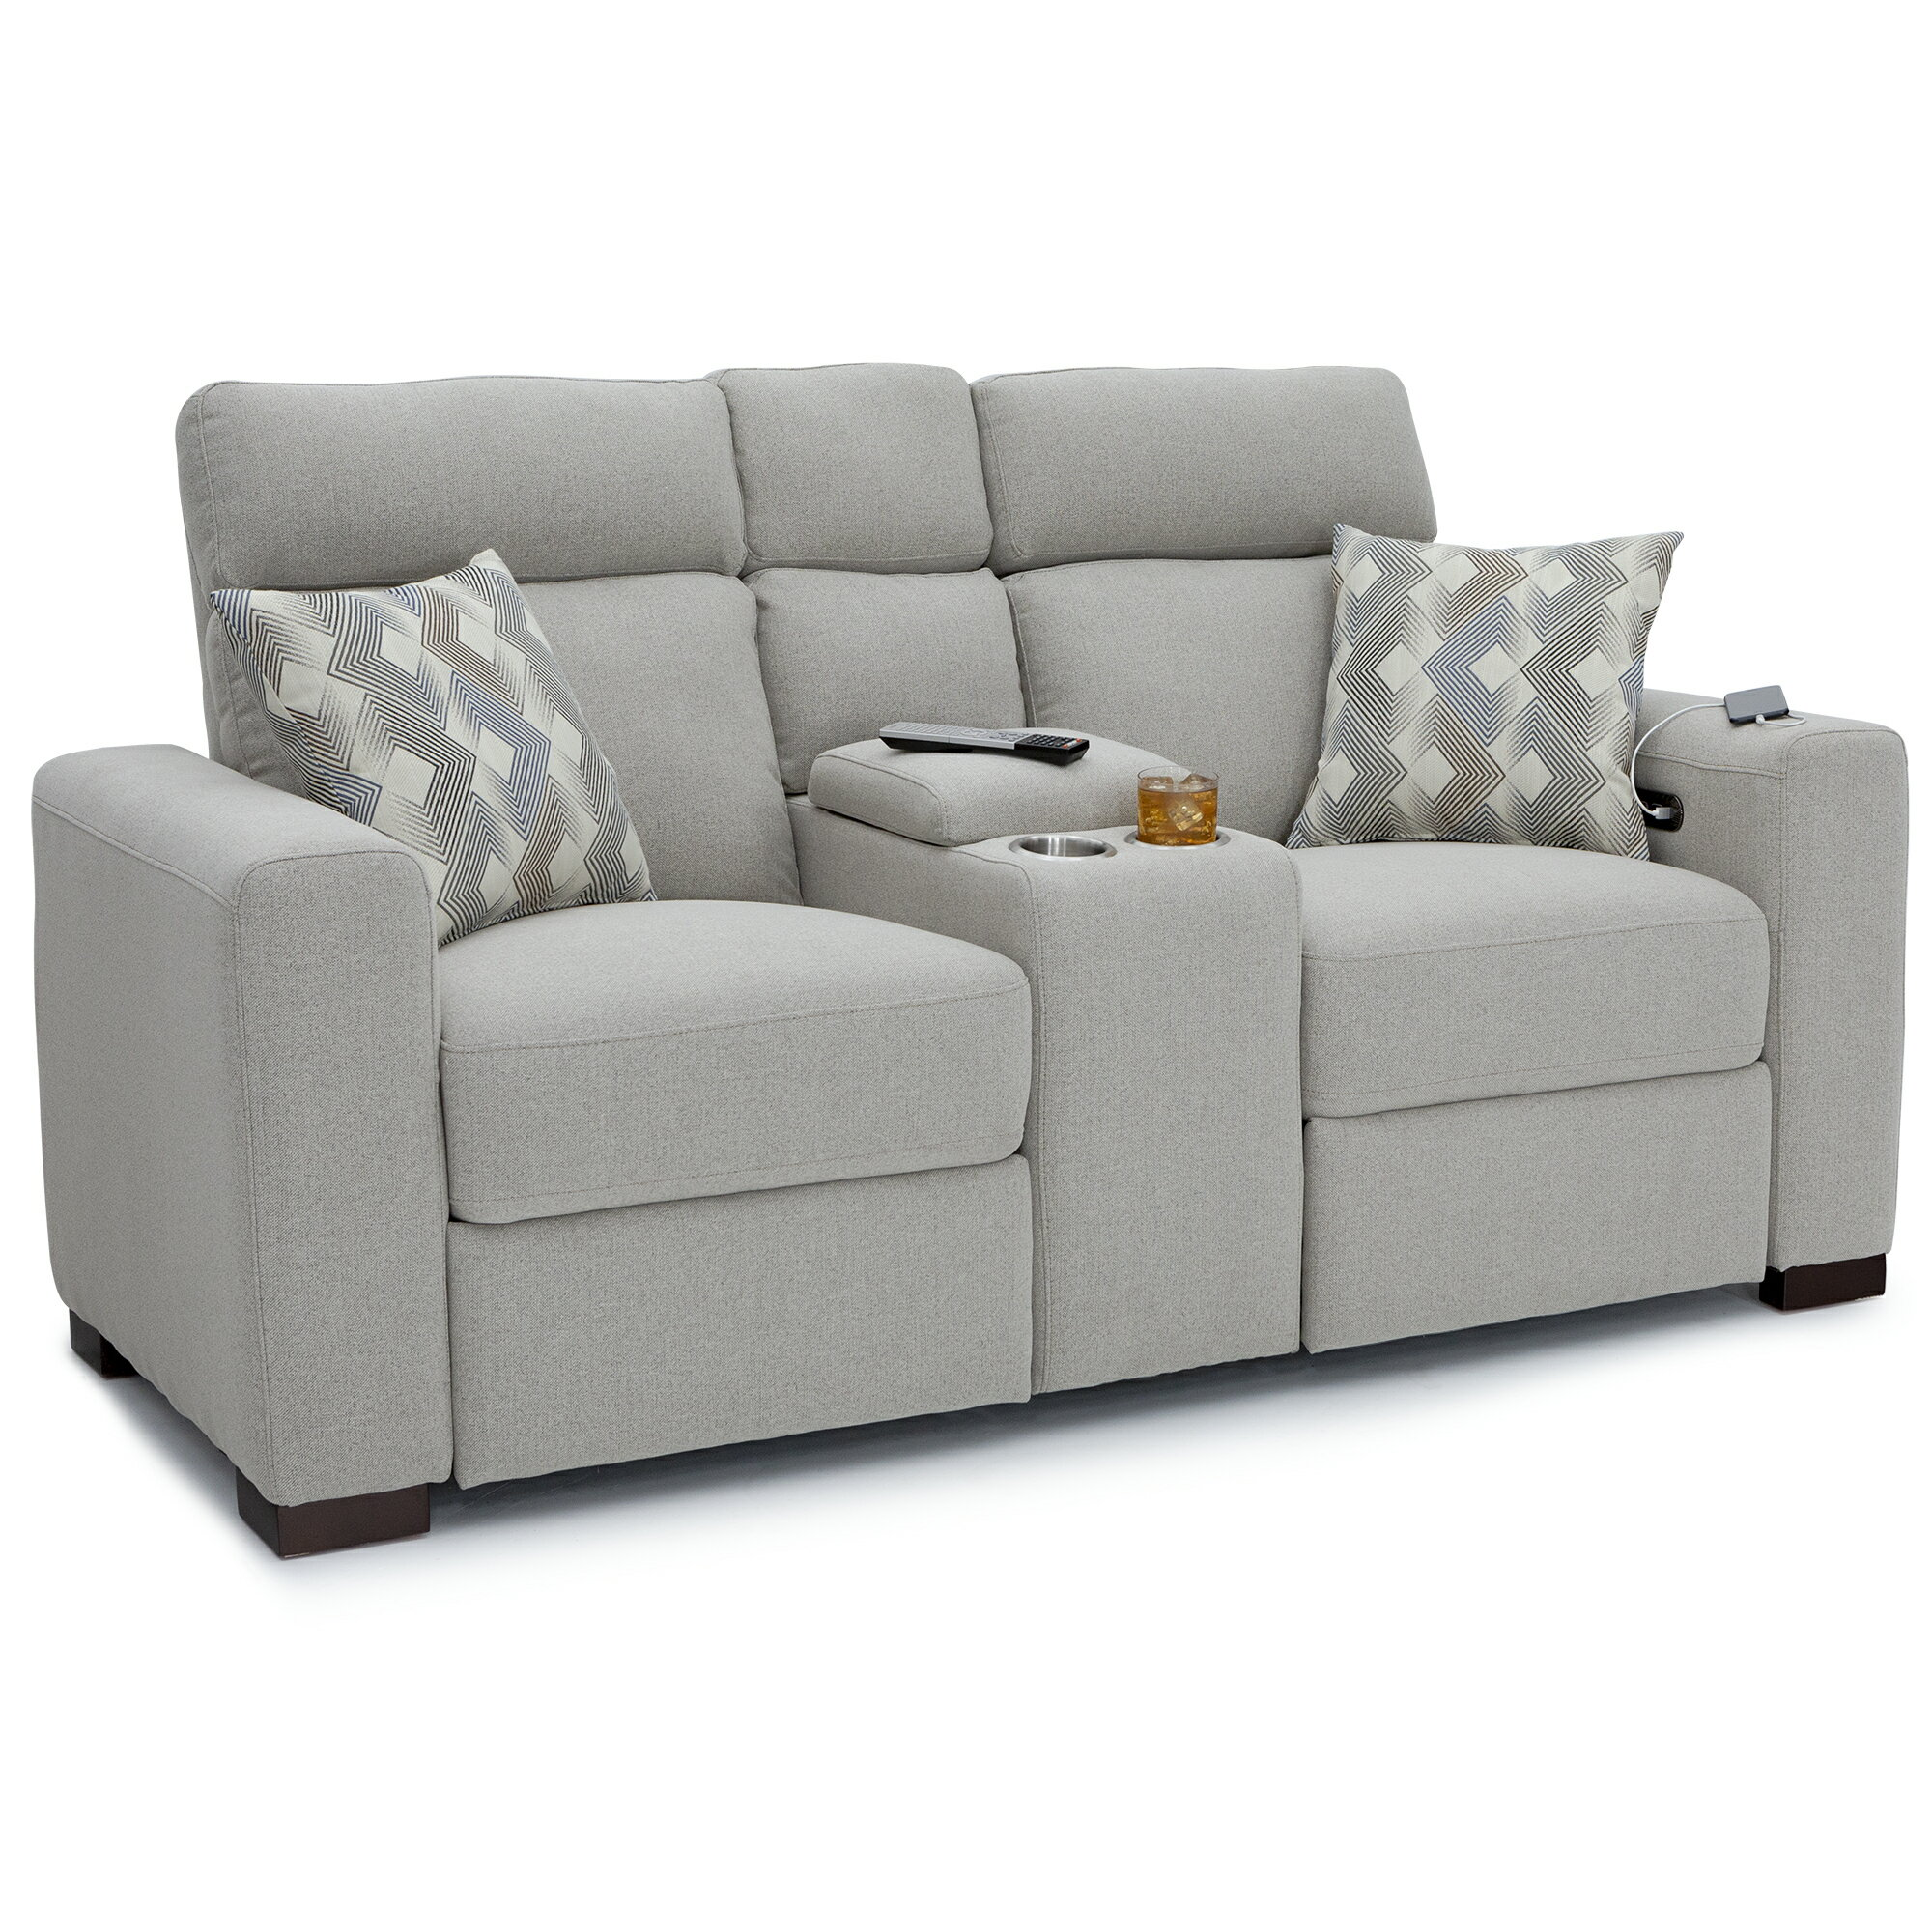 Tremendous Seatcraft 4801 Capital Home Theater Seating Loveseat Performance Fabric Recline Adjustable Powered Headrests Center Storage Console Usb Charging Cup Machost Co Dining Chair Design Ideas Machostcouk